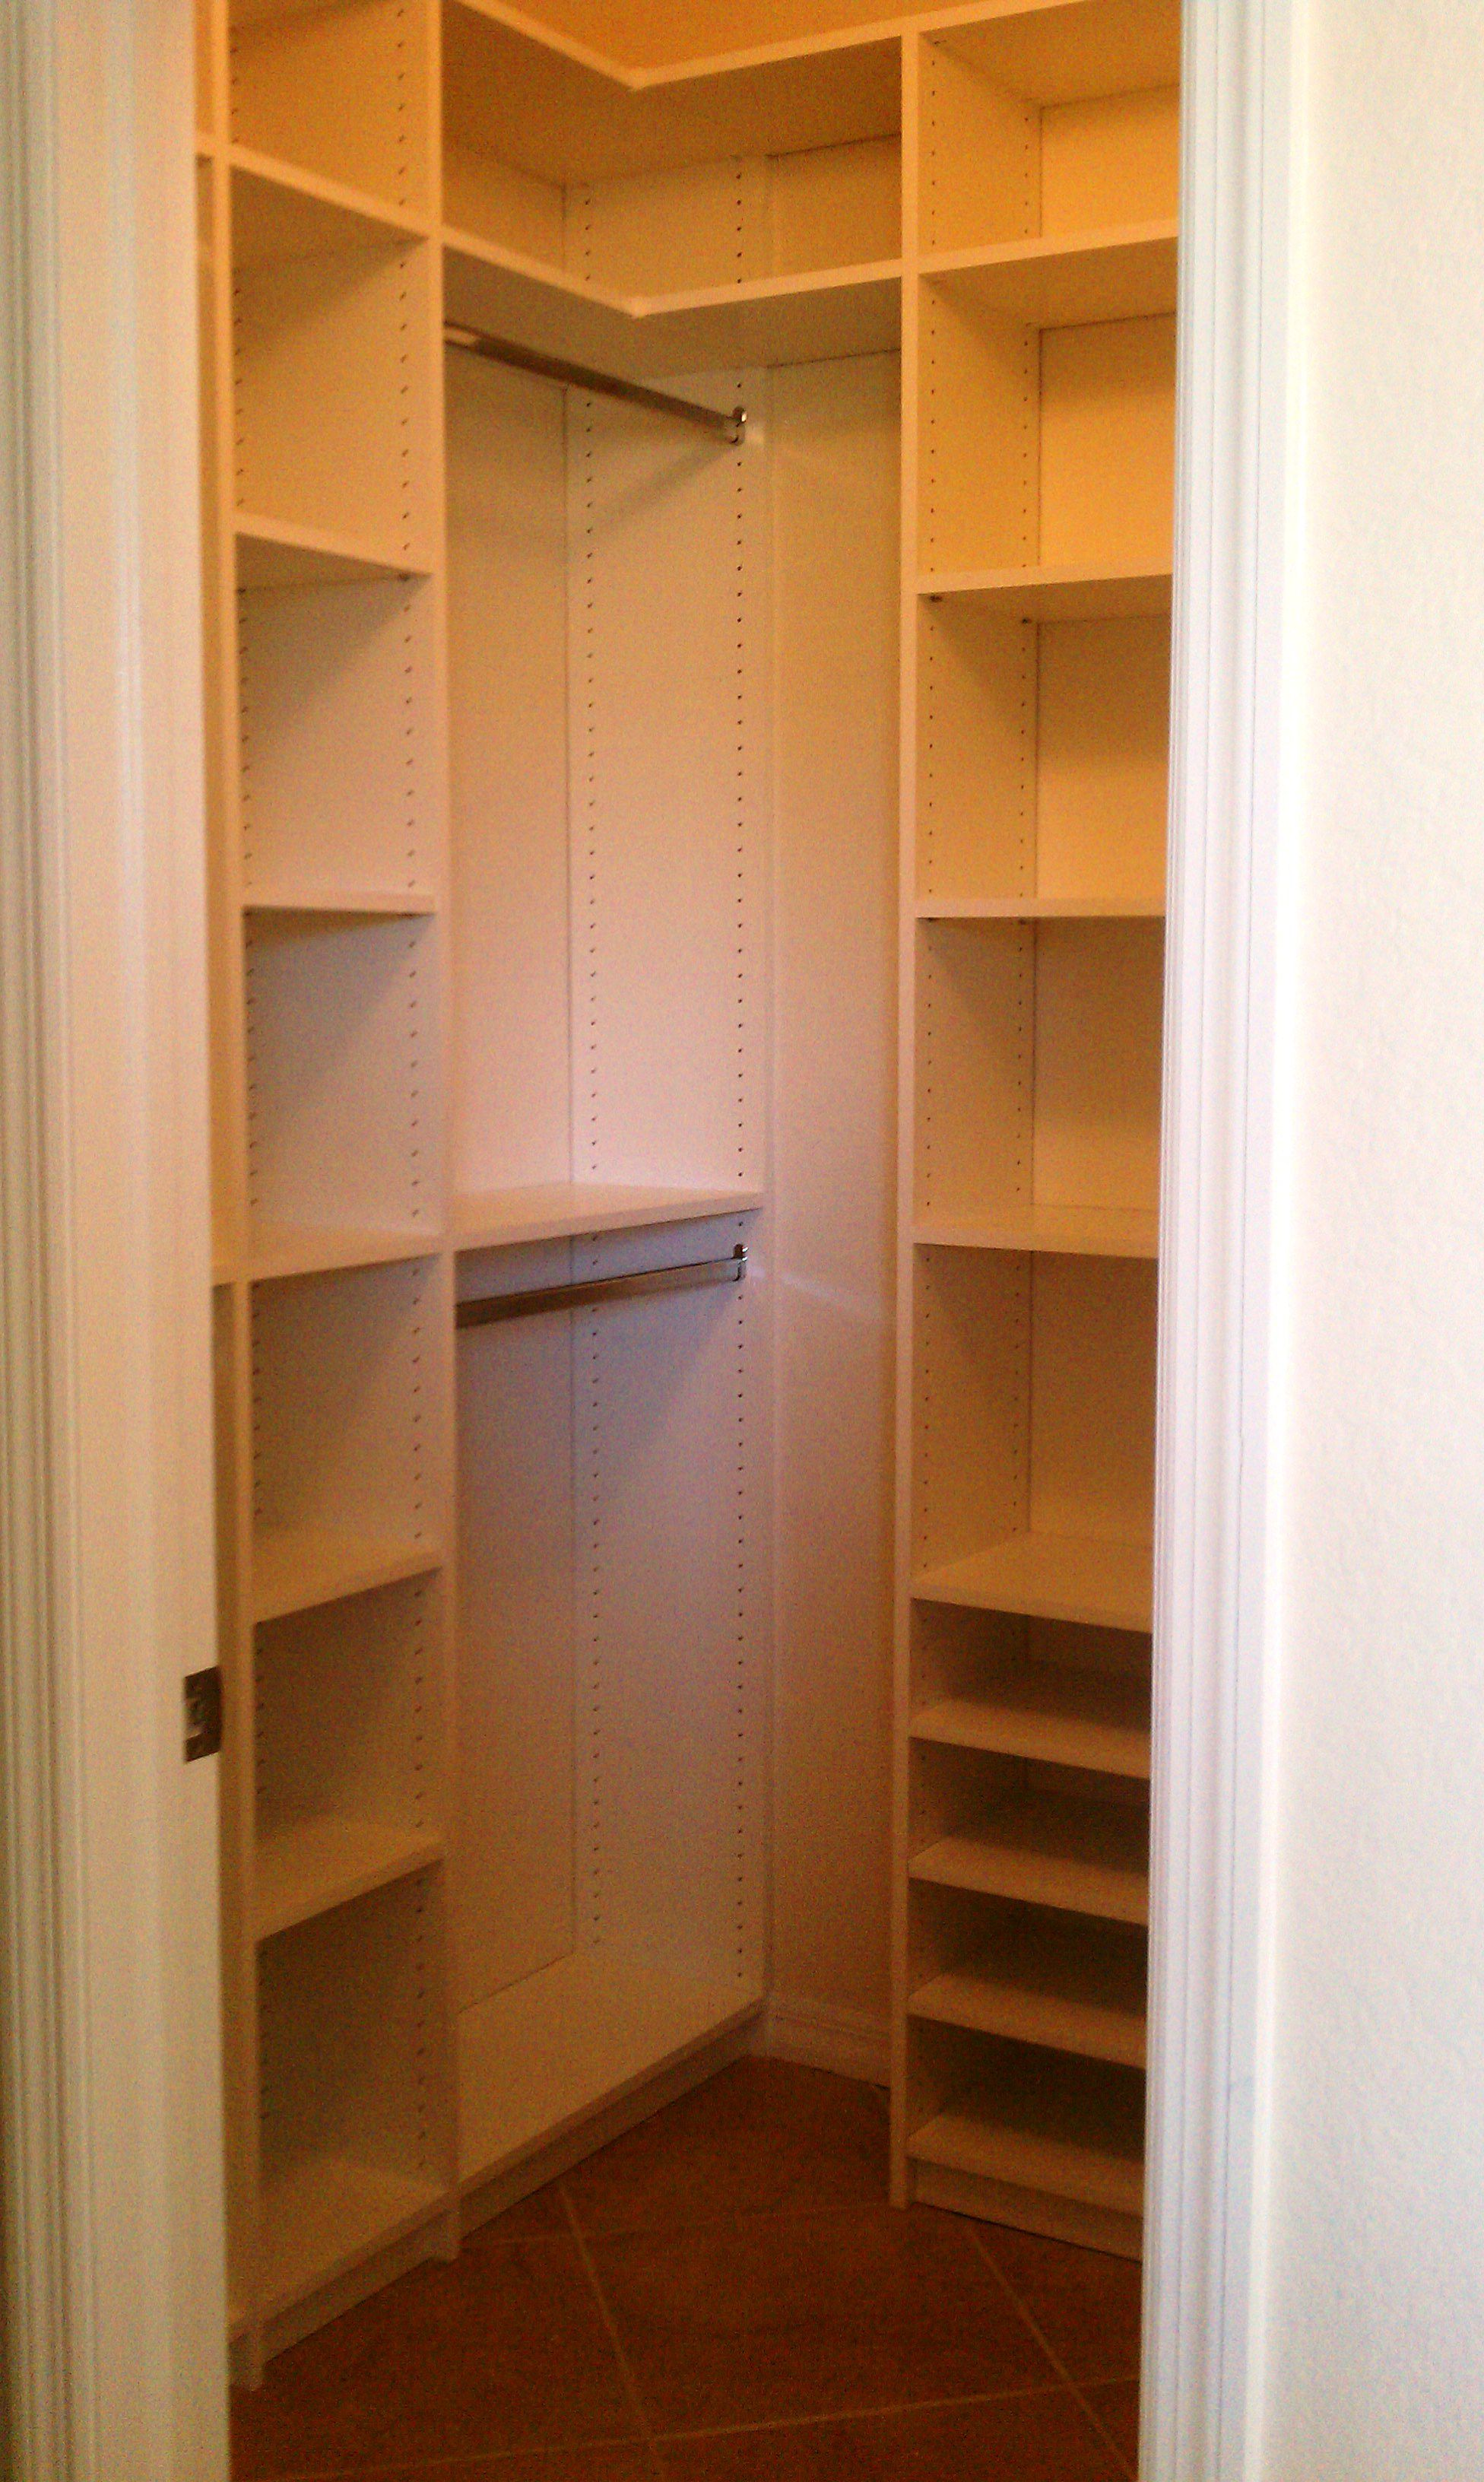 Adorable Design Of The Small Closet Design With Brown Wooden Shelves Added With Brown Wooden Floor Ideas